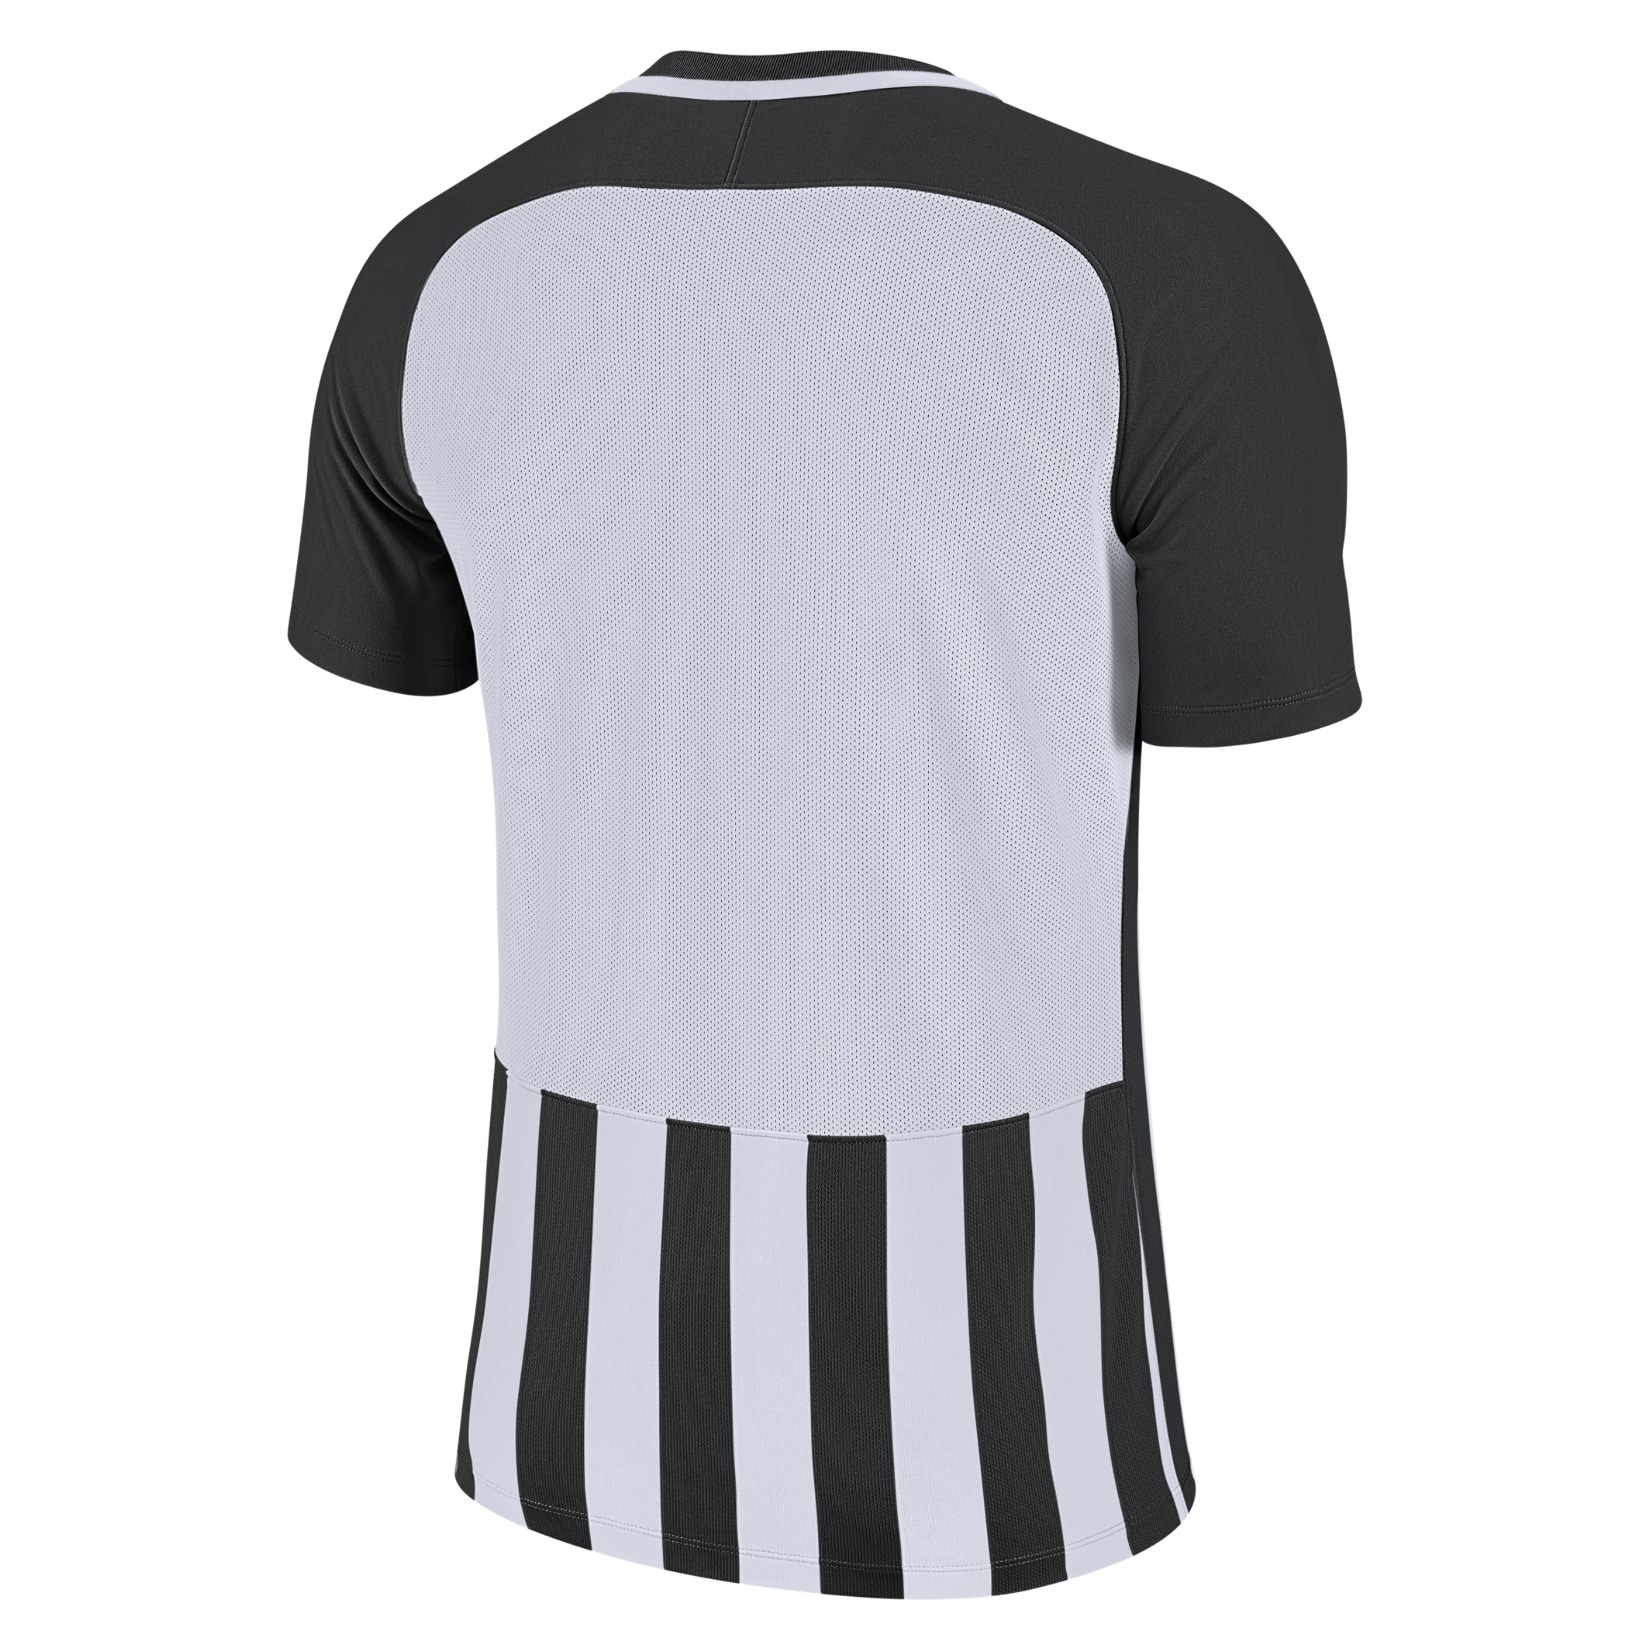 Nike Striped Division III Short Sleeve Shirt Black-White-White-Black